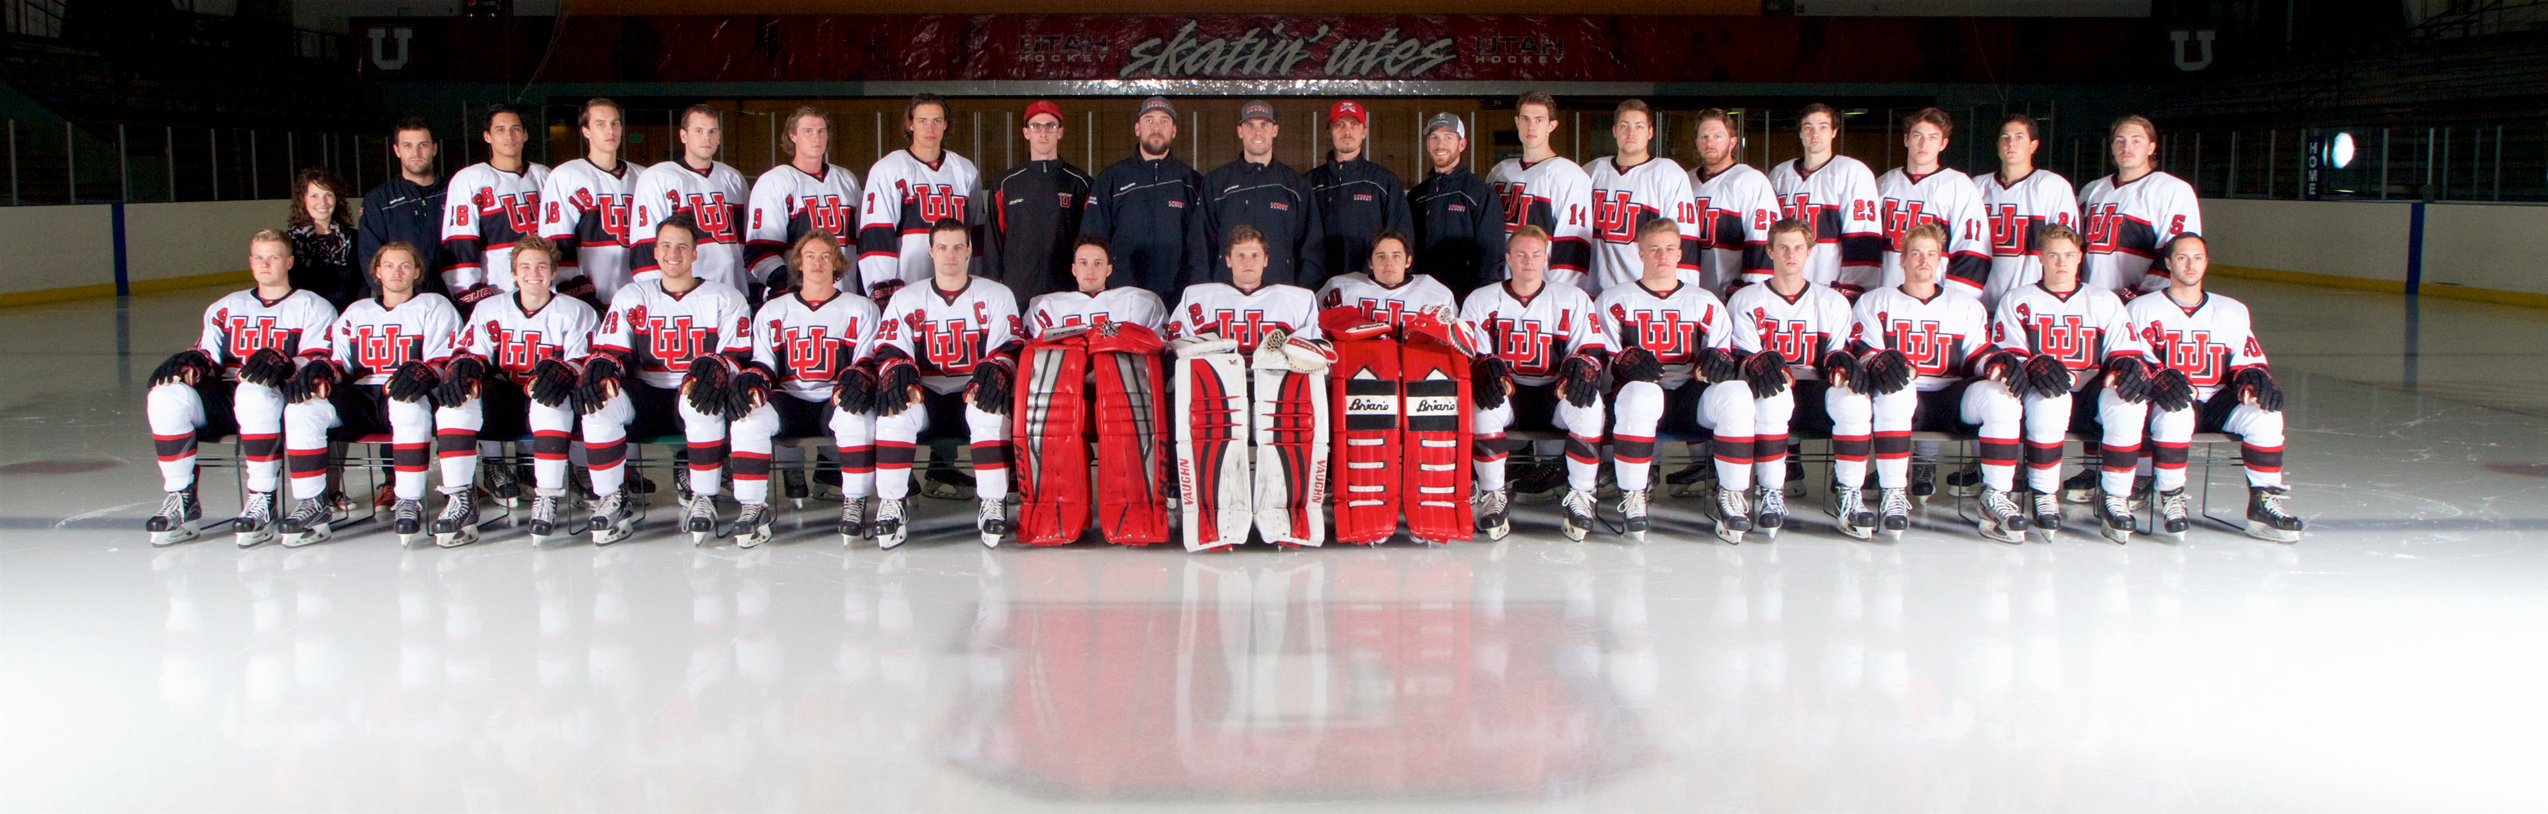 2016-17 University of Utah Hockey